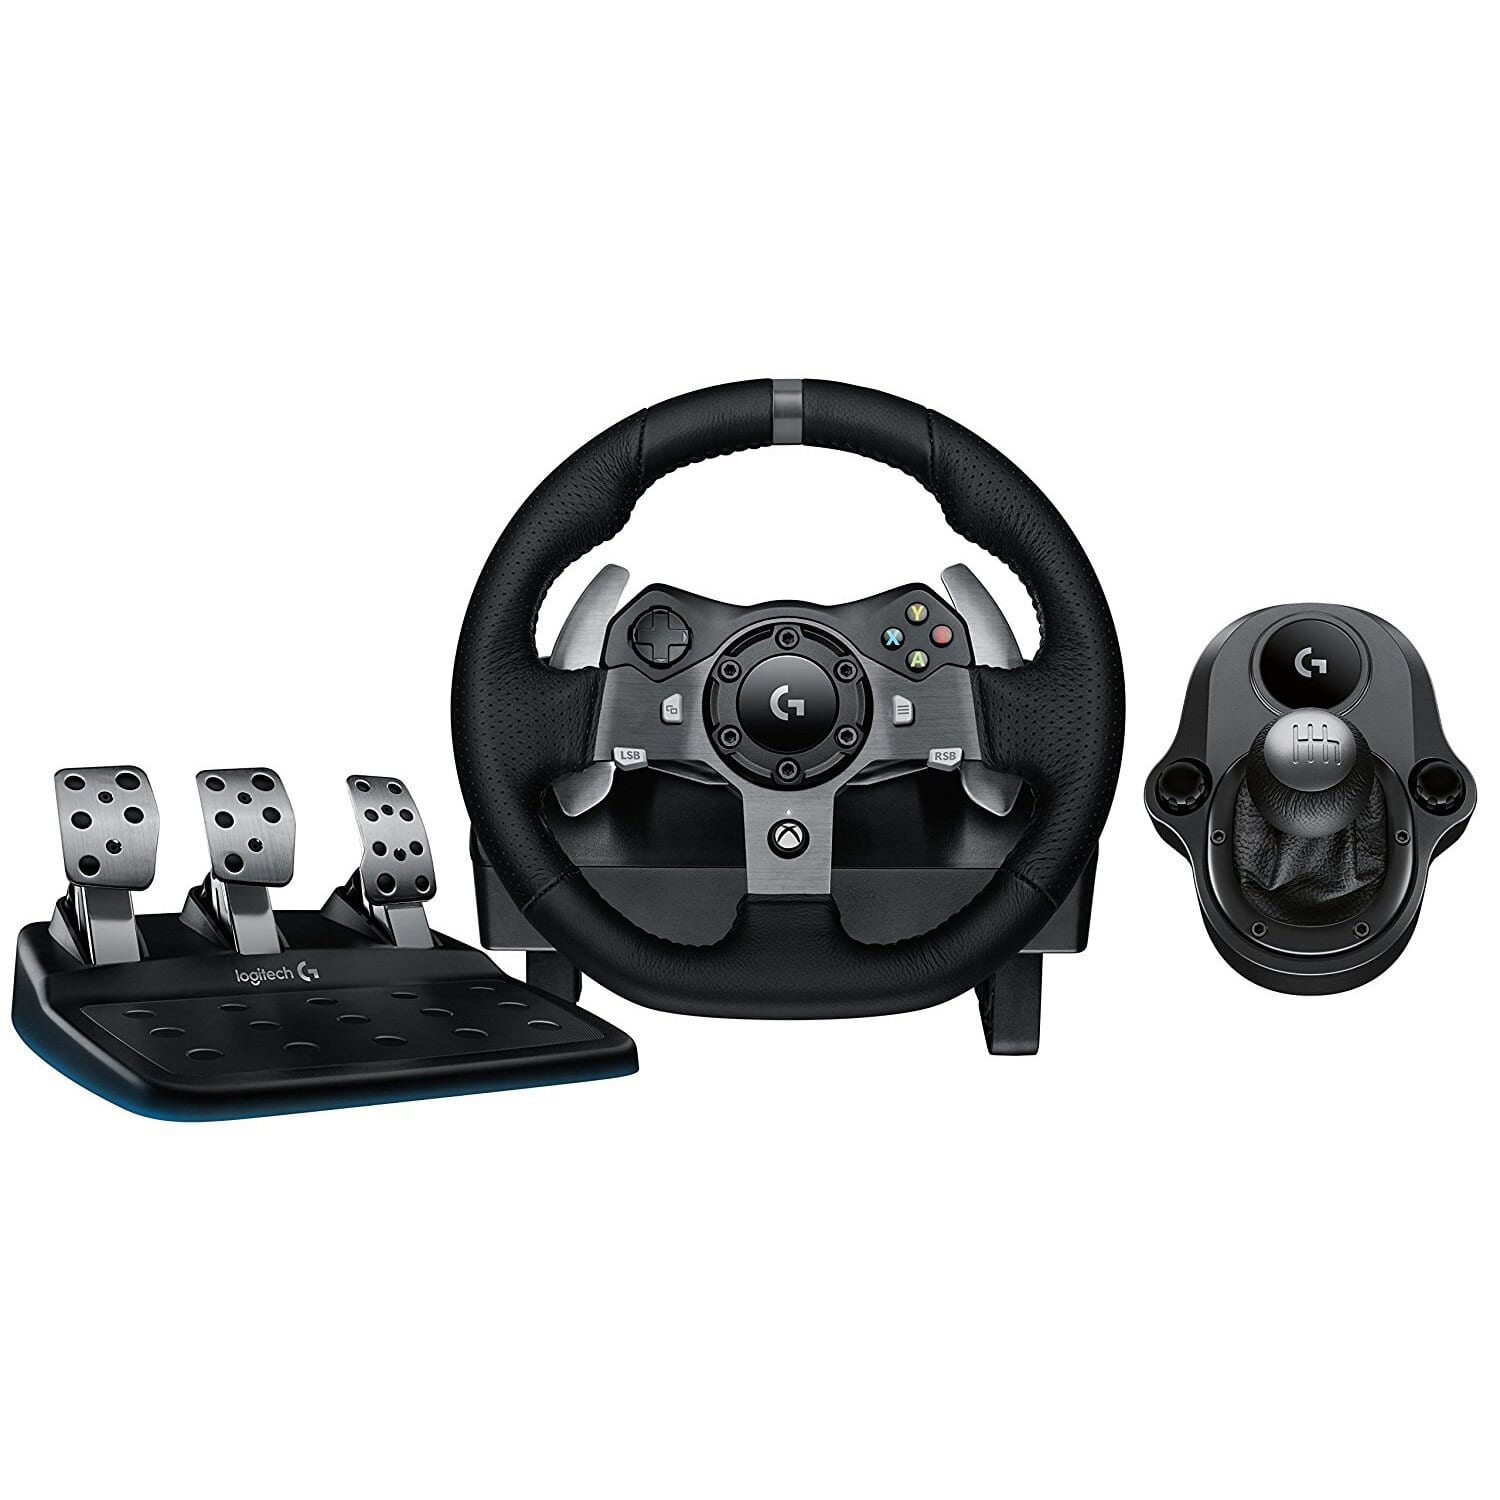 Logitech G29/G920 [PS4|PC,Xbox] Driving Force Racing Wheel + Pedals + G-Force Shifter Bundle - $224.95 + Free Shipping